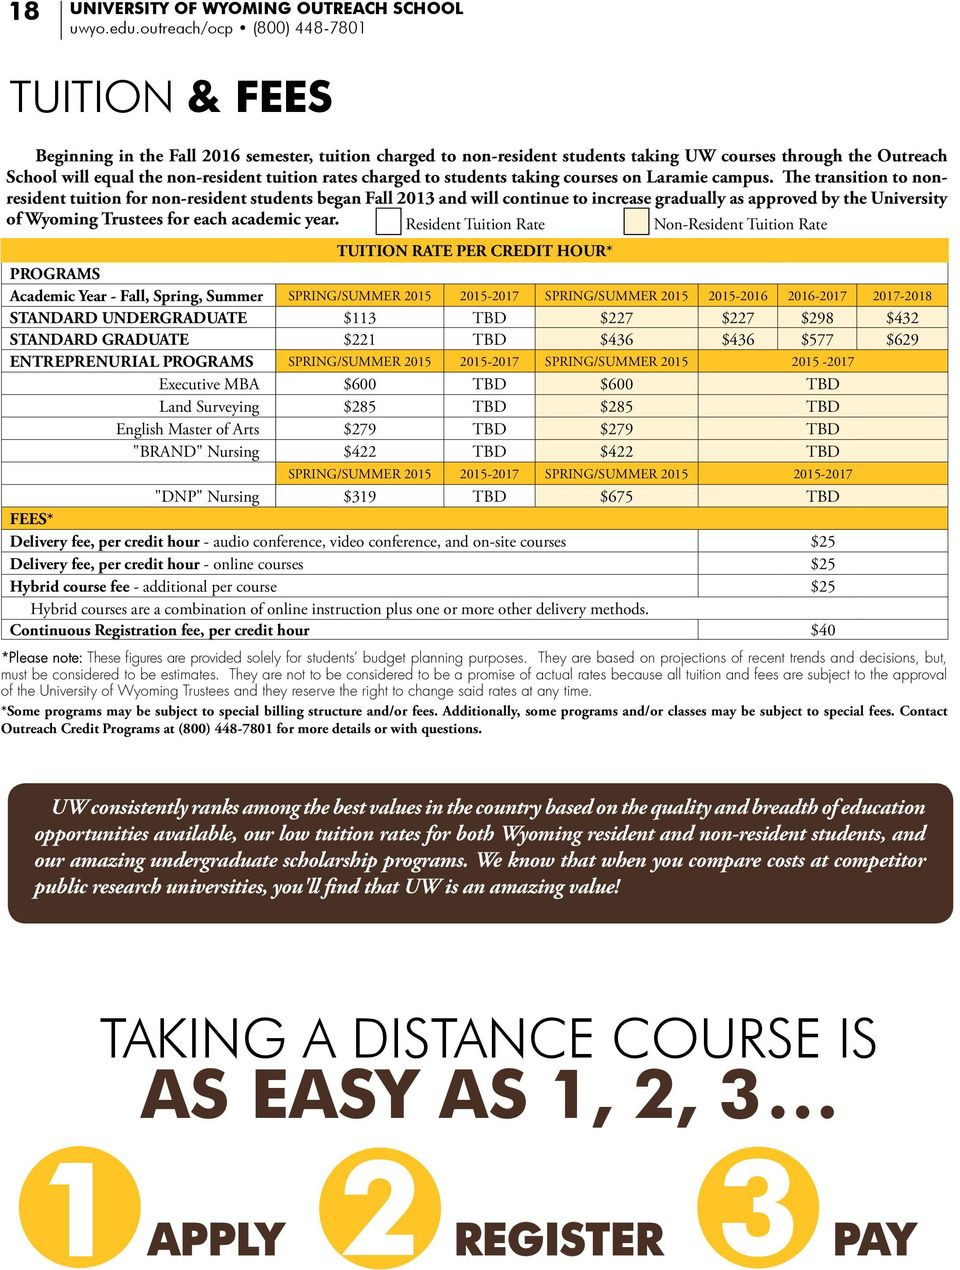 tuition rates charged to students taking courses on Laramie campus.